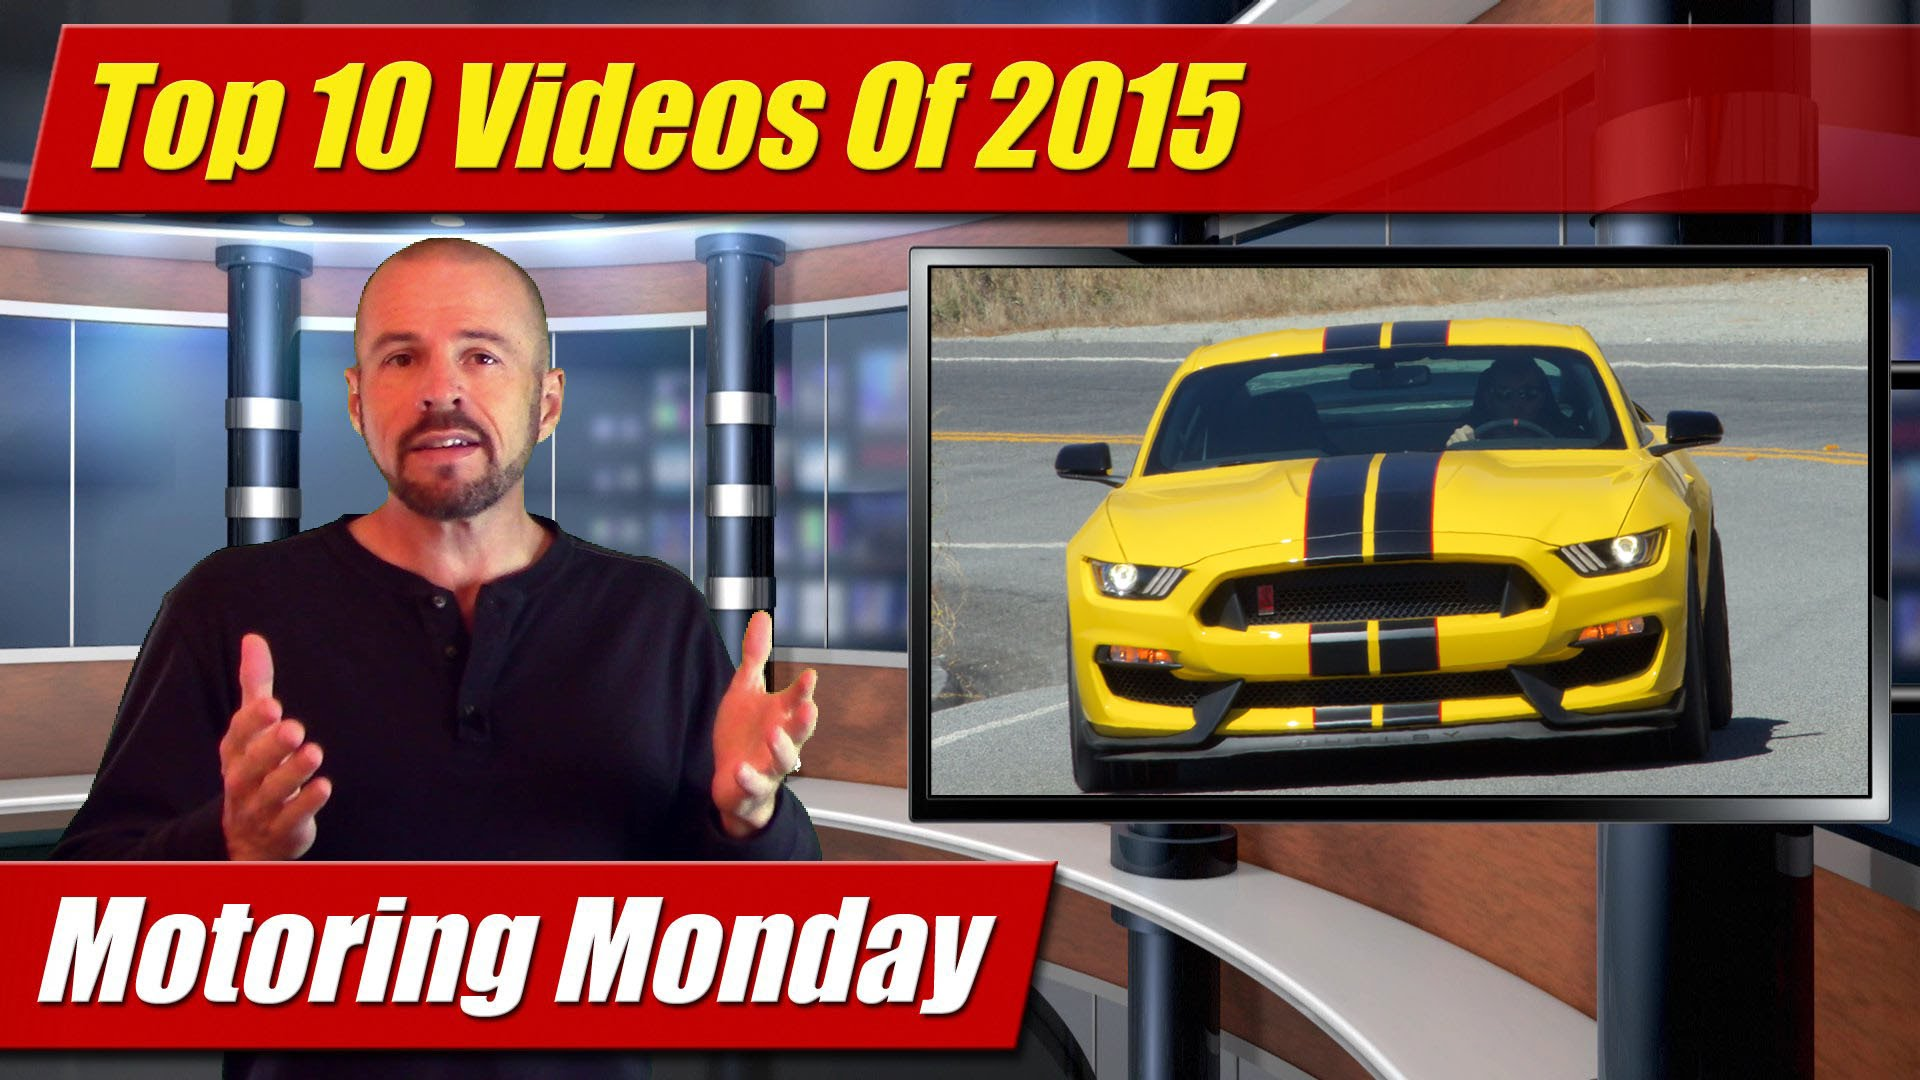 Motoring Monday: Top 10 Videos Of 2015